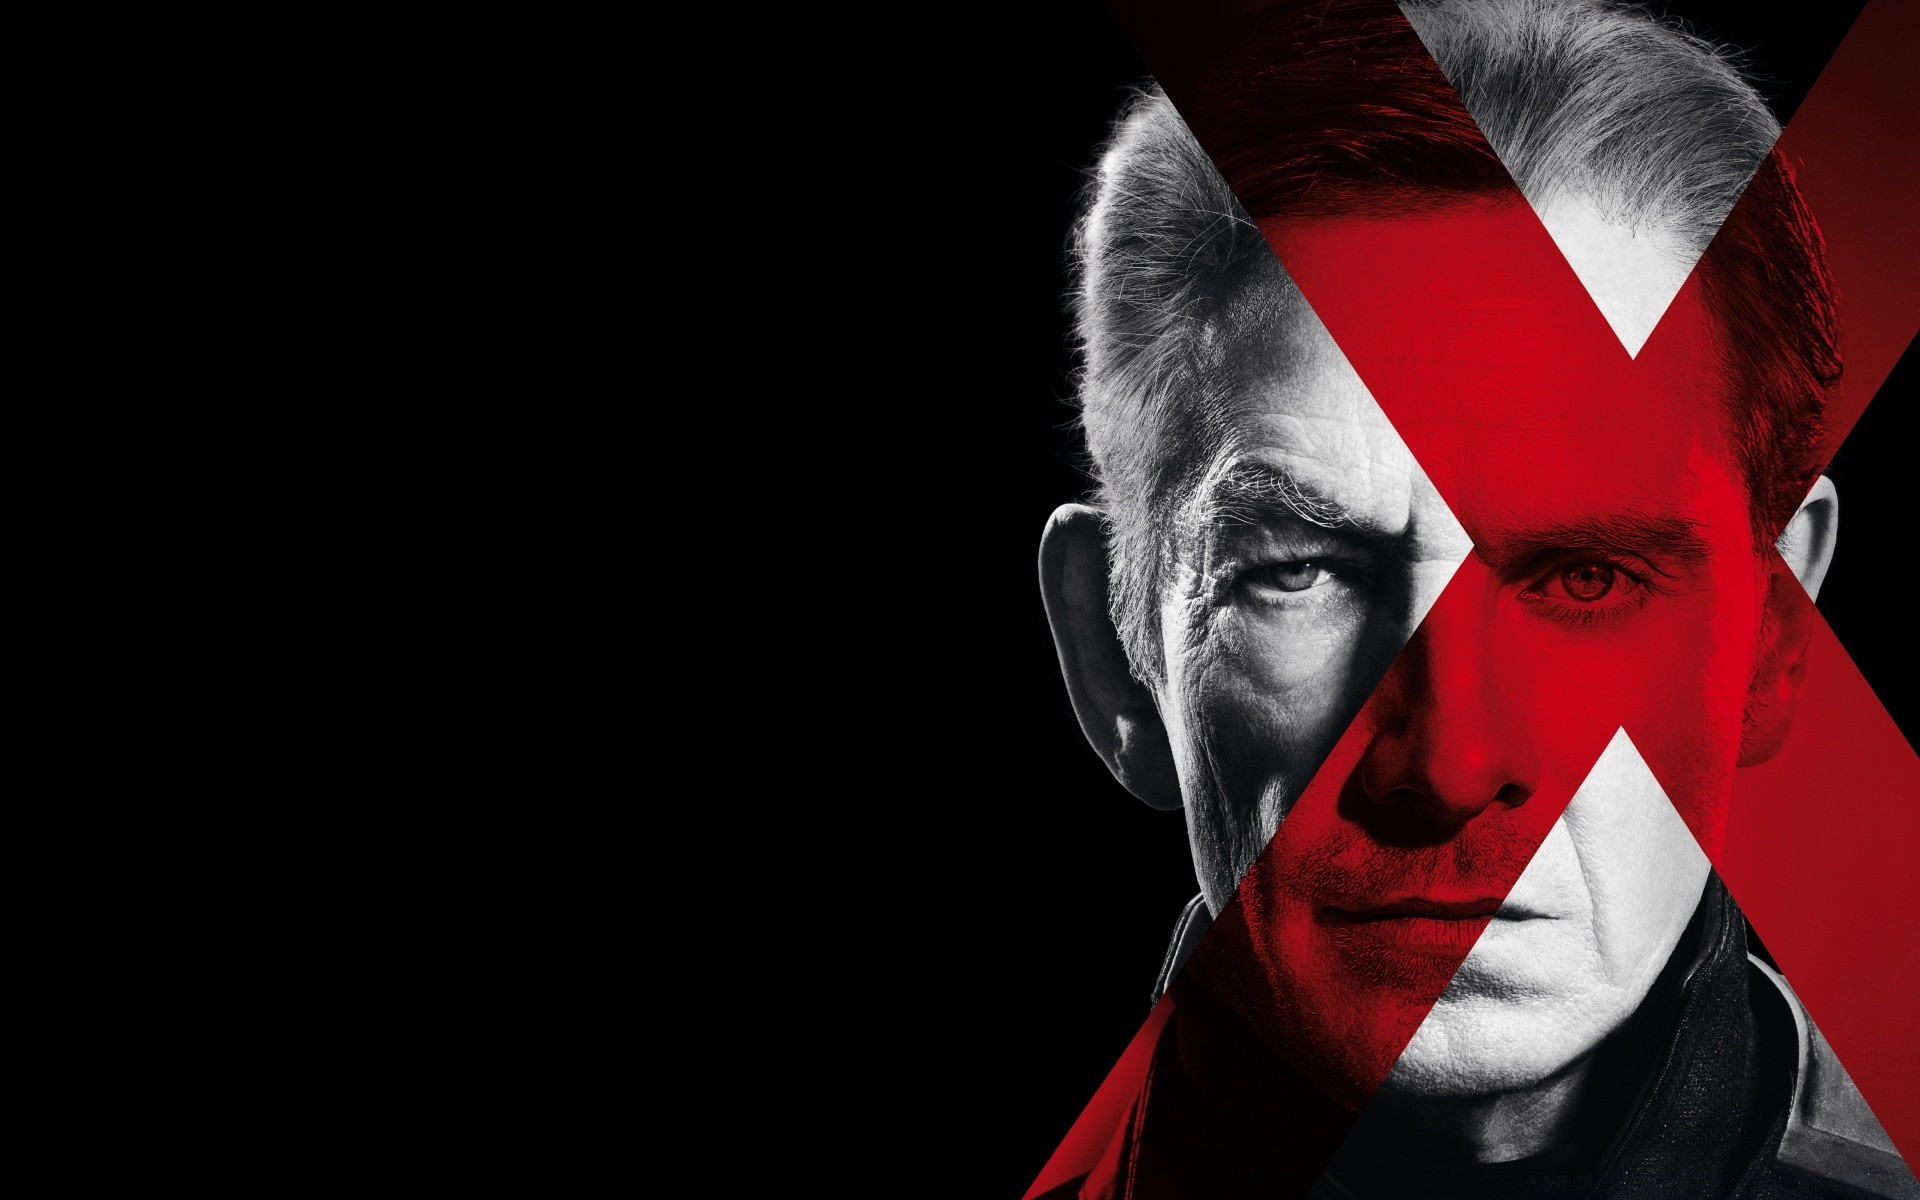 X Men Days Of Future Past Magneto Android Wallpapers For Free